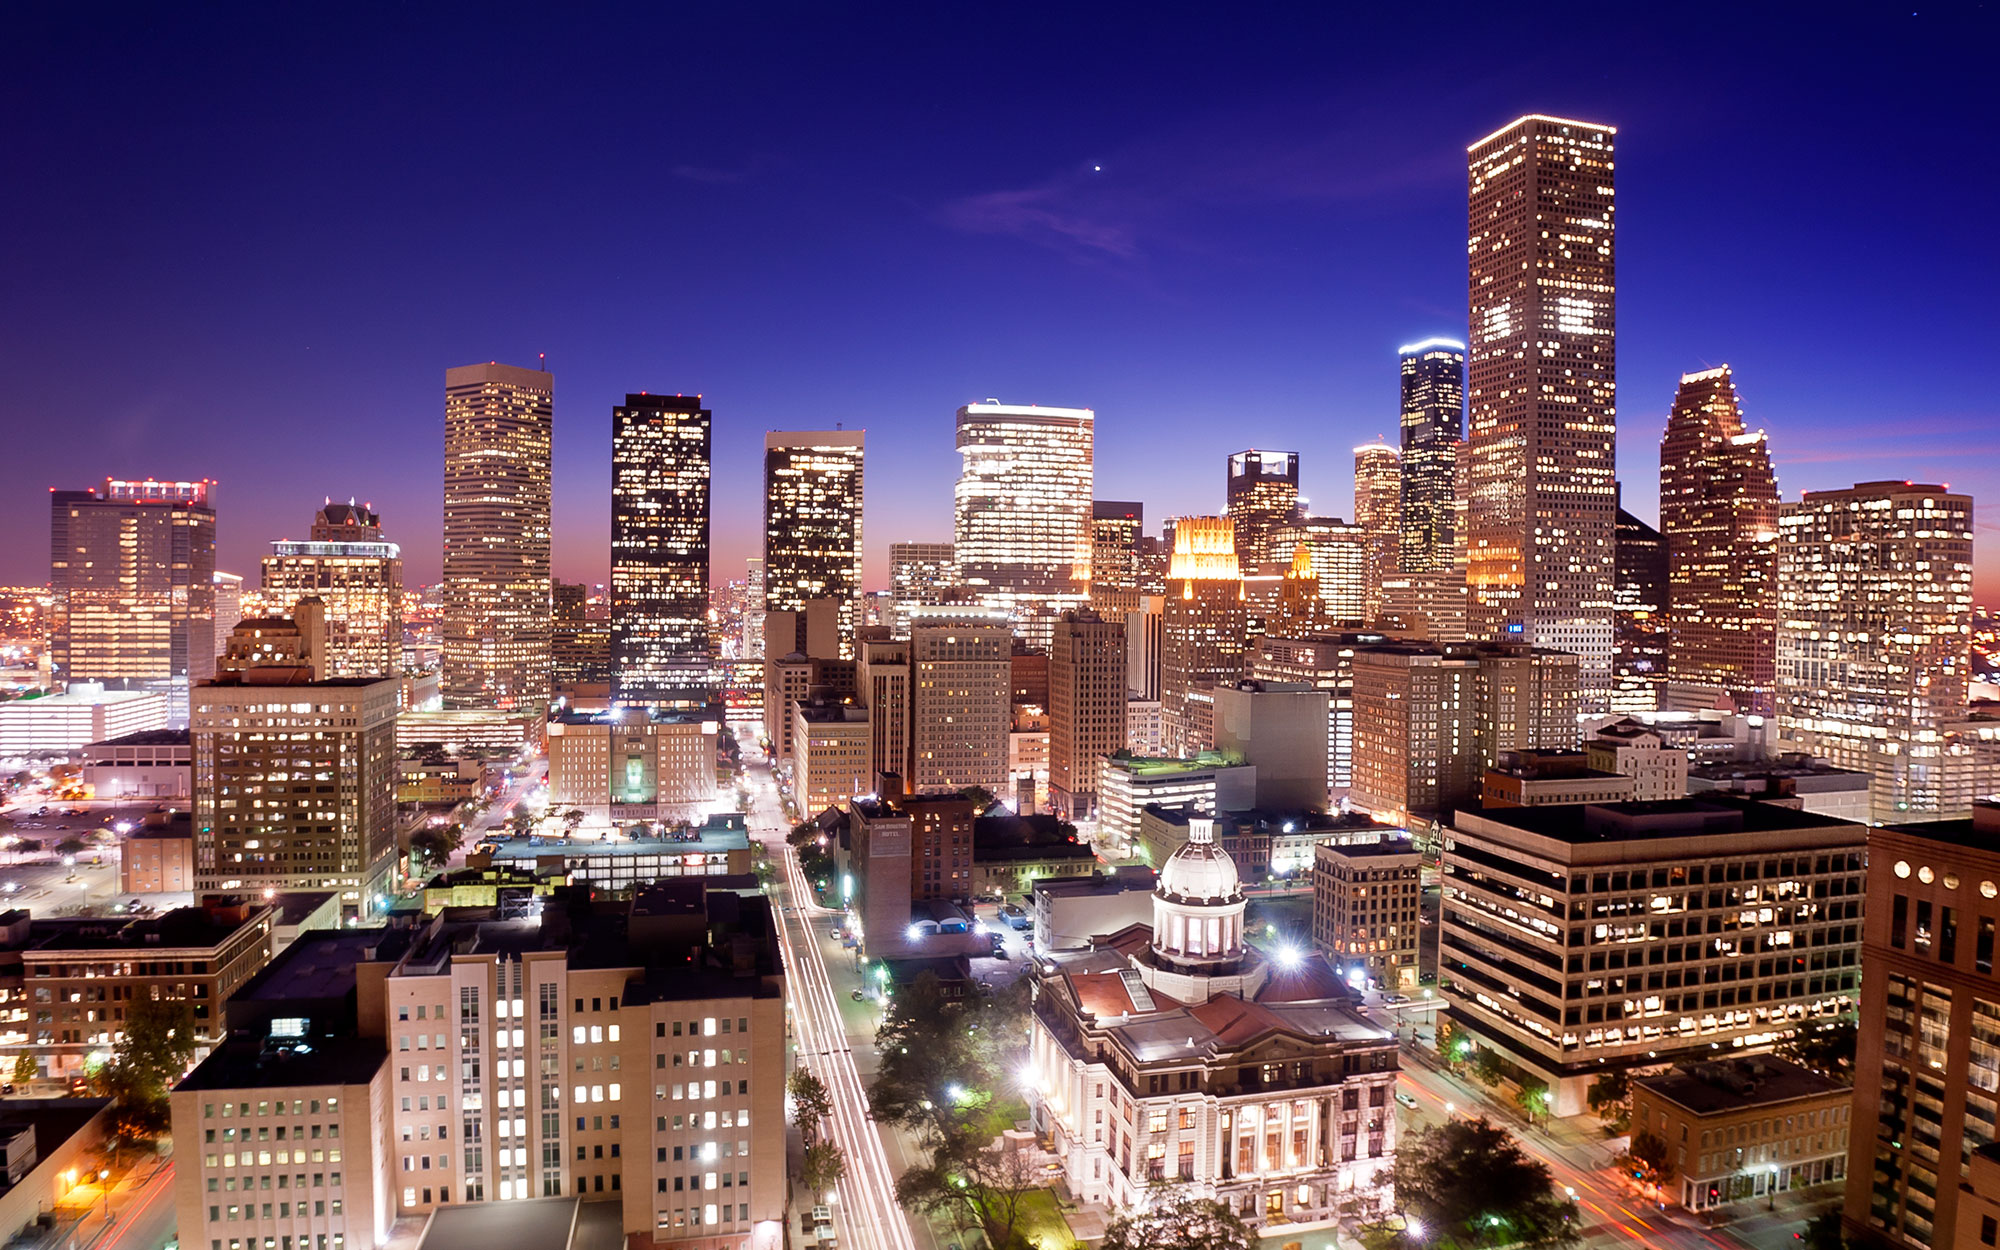 Best Affordable U.S. City Getaways: Houston